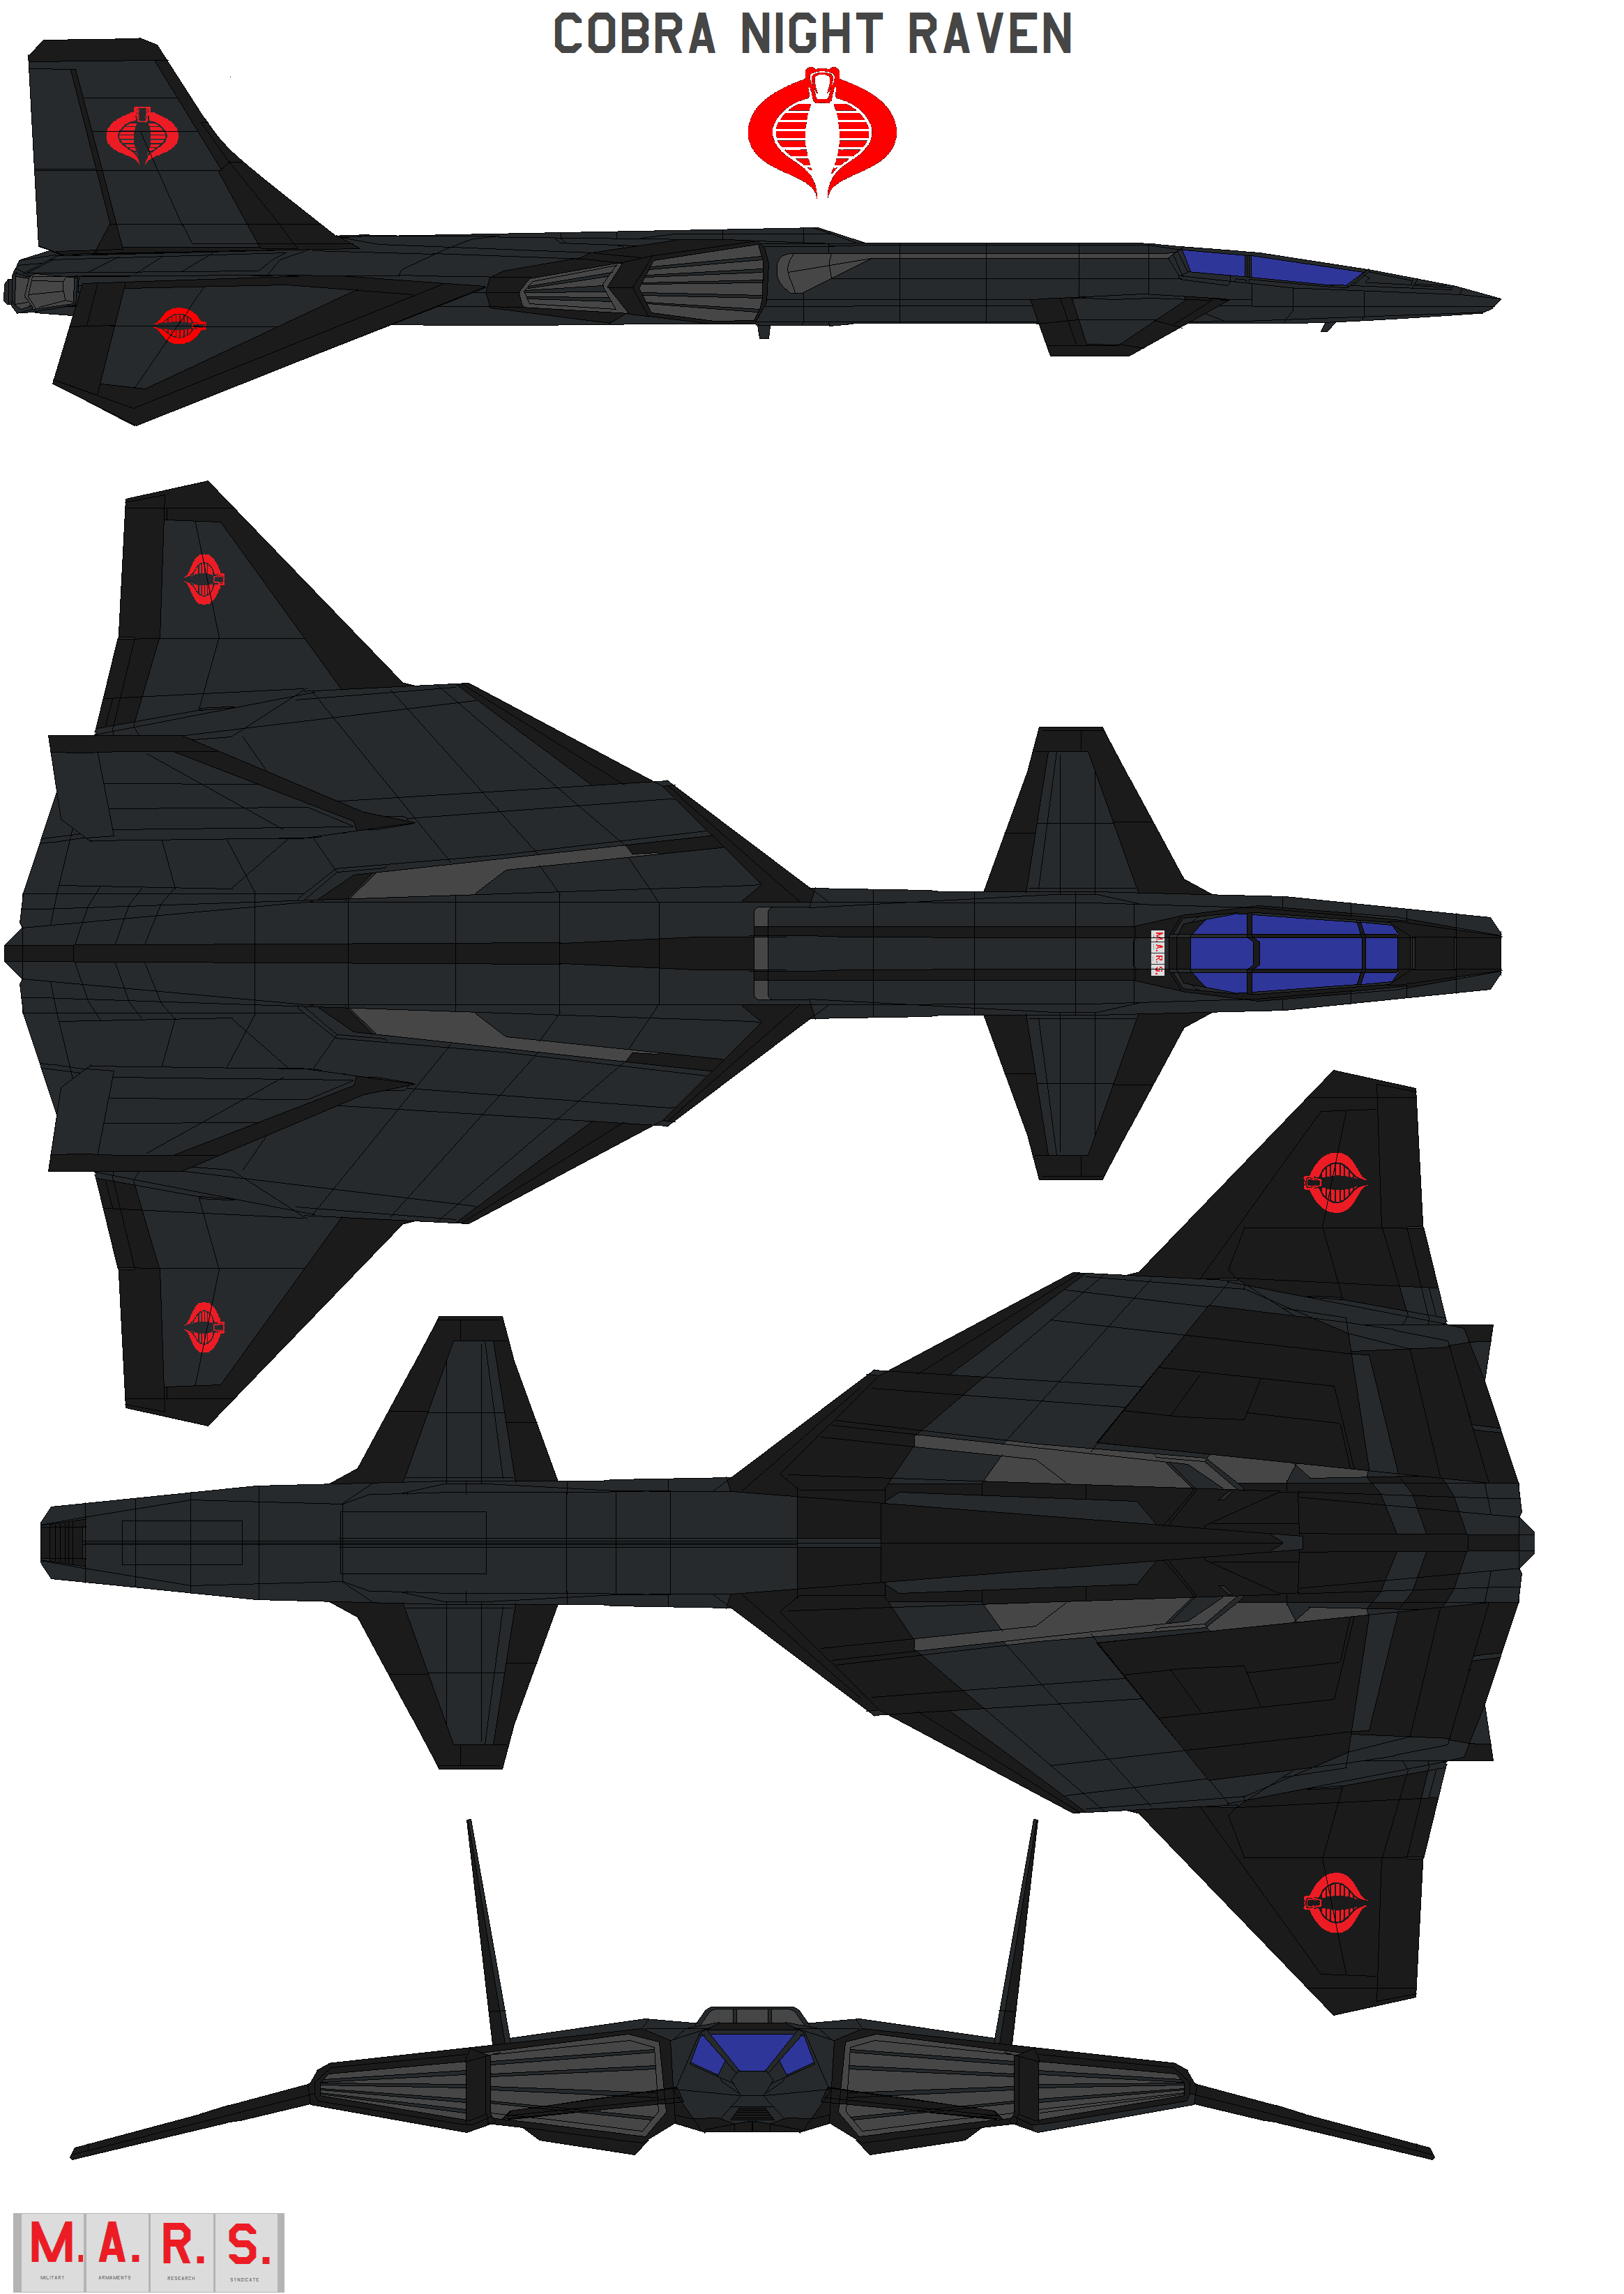 Fastest Plane In The World >> Cobra Night Raven by bagera3005 on DeviantArt